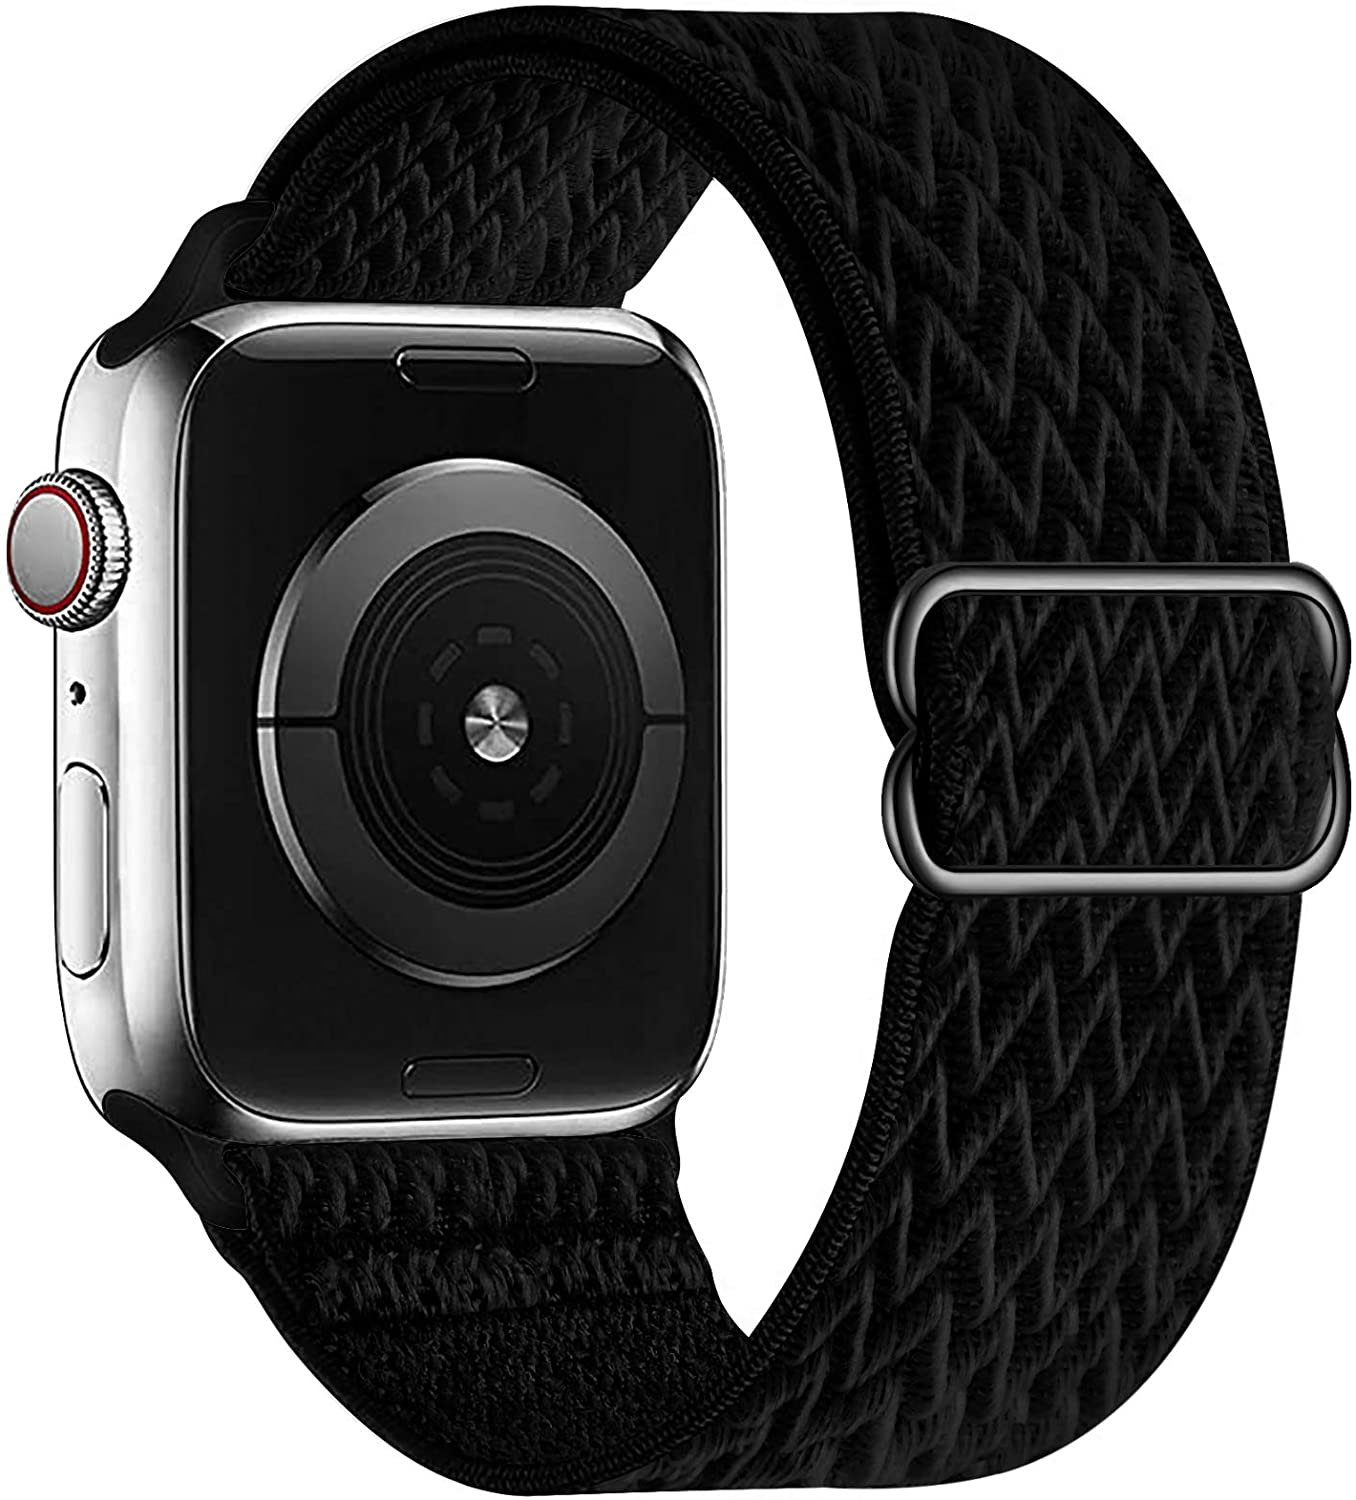 OHCBOOGIE Stretchy Solo Loop Strap Compatible with Apple Watch Bands 38mm 40mm 42mm 44mm ,Adjustable Stretch Braided Sport Elastics Weave Nylon Women Men Wristband Compatible with iWatch Series 6/5/4/3/2/1 SE,Black,38/40mm